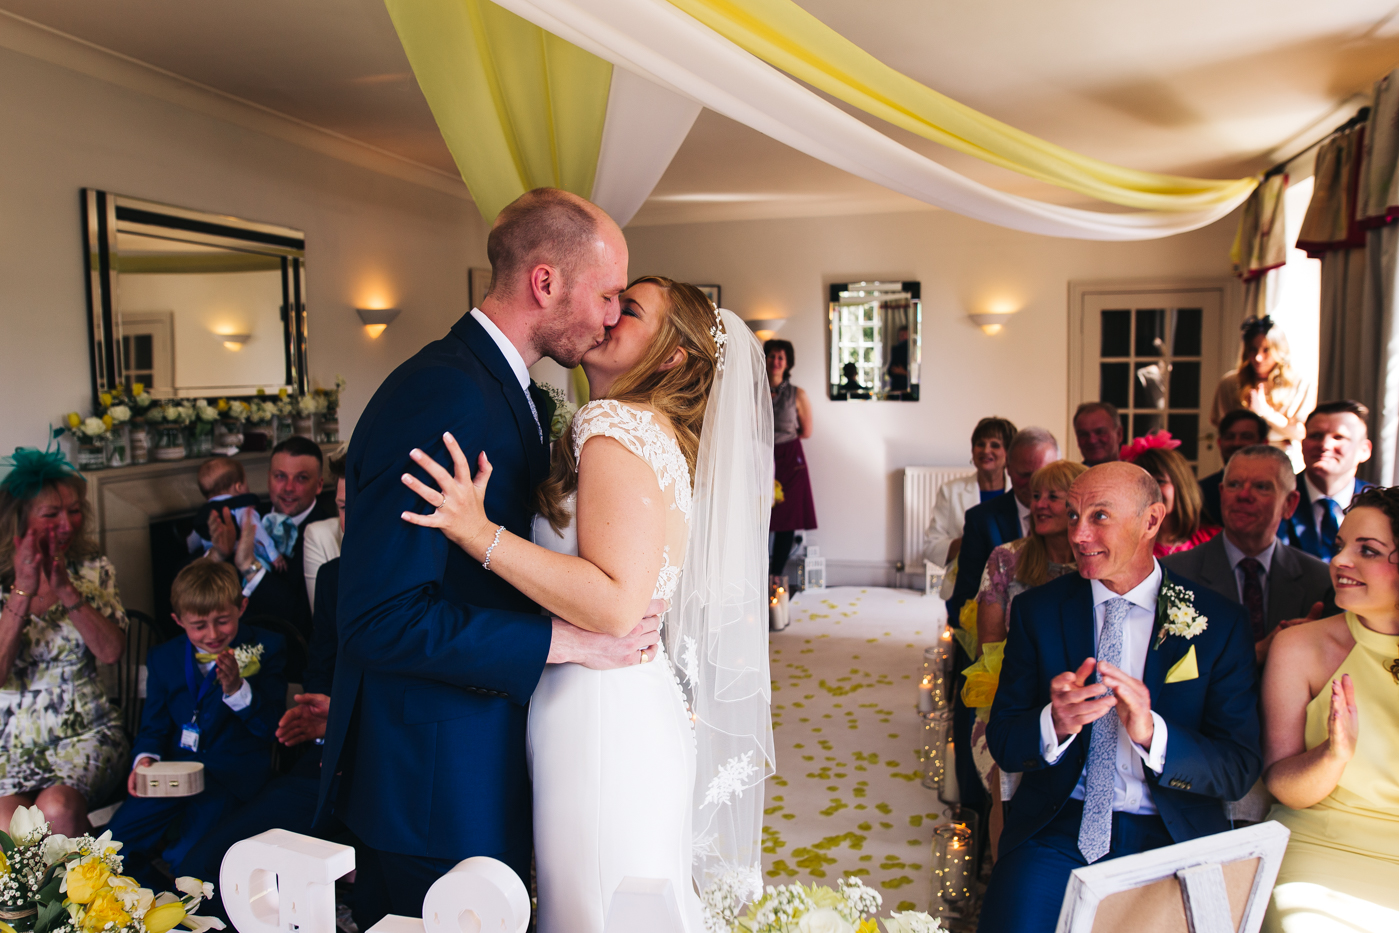 the bride and groom kiss during the ceremony. wedding at laskill house north yorkshire helmsley wedding photographer north east teesside